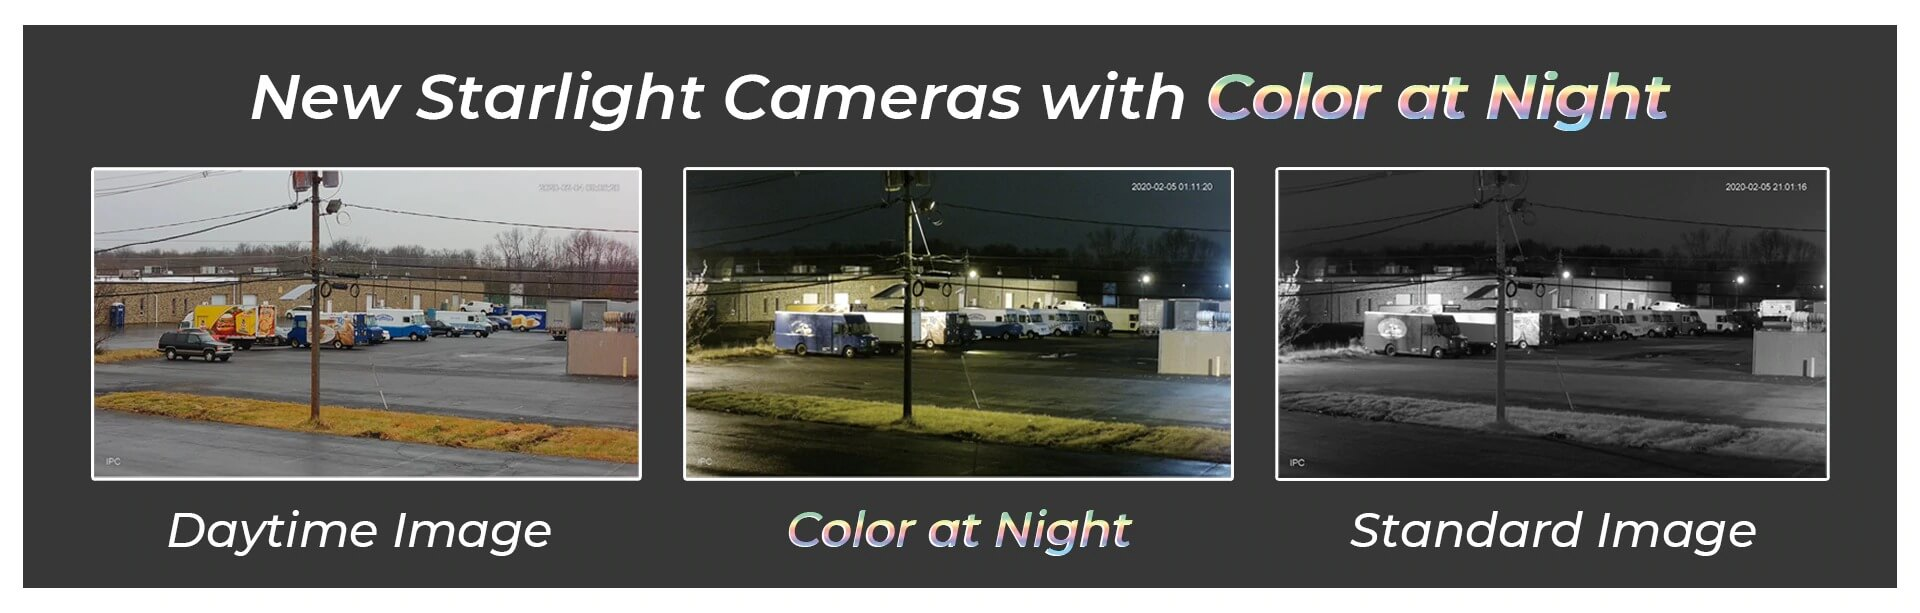 starlight-cameras-with-color-at-night.jpg